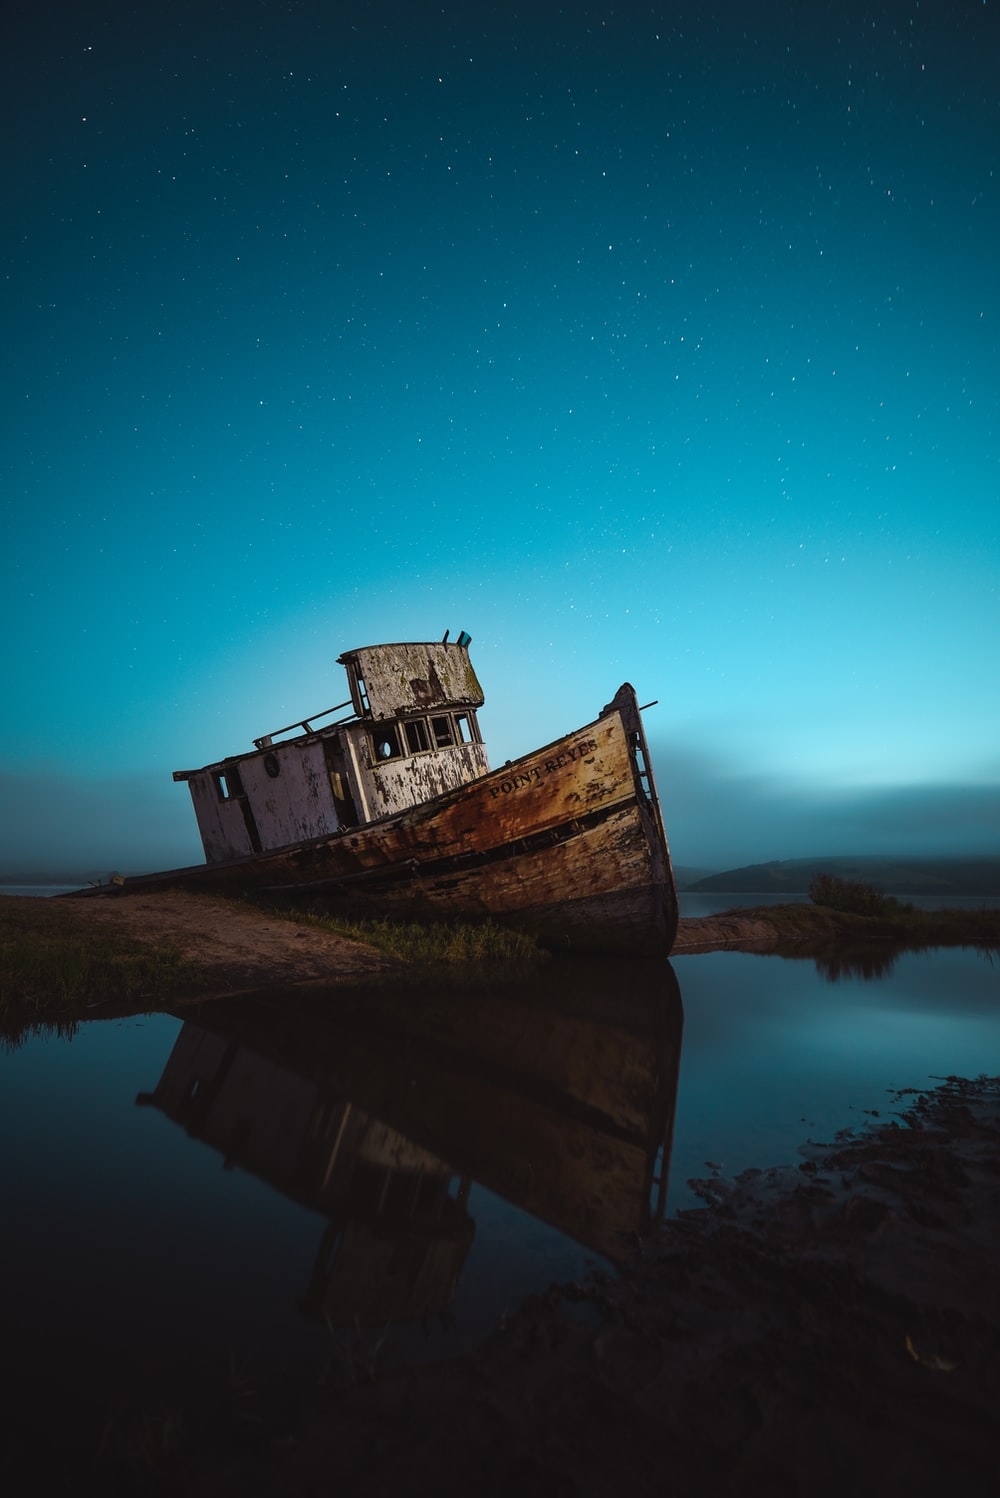 abandoned ship on seashore under sky with stars